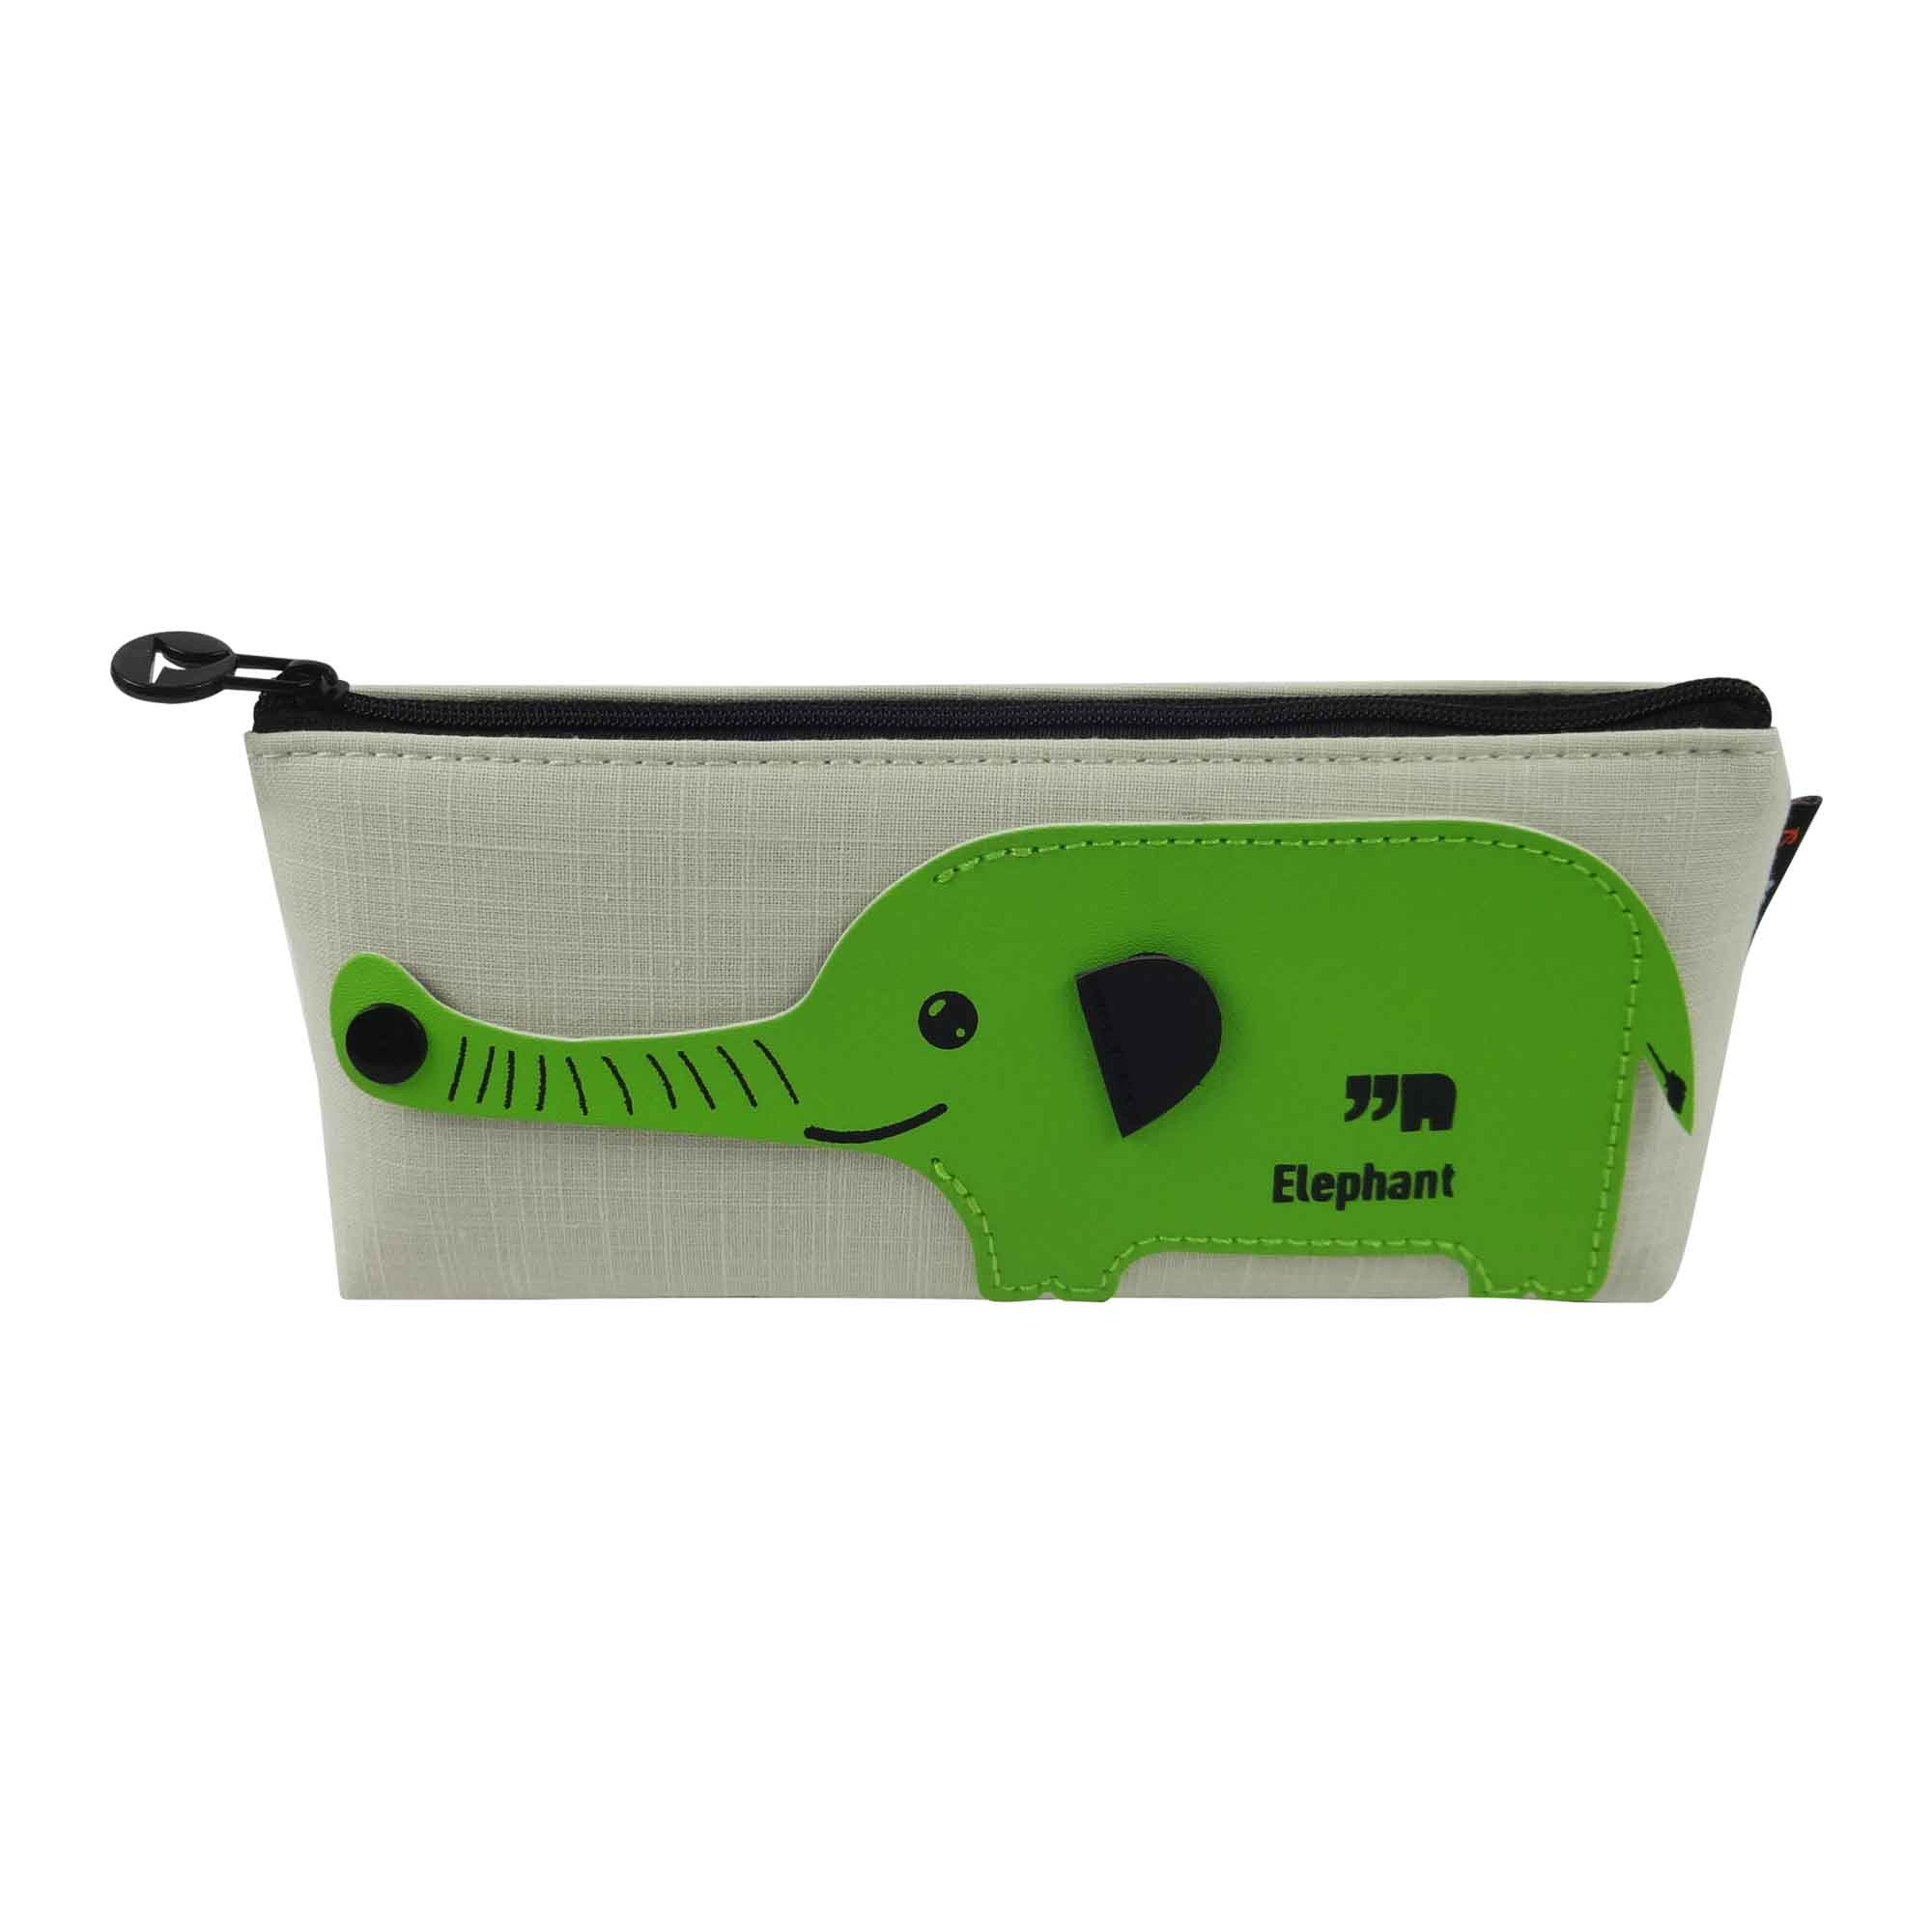 Fabric Pencil Case - Elephant Green